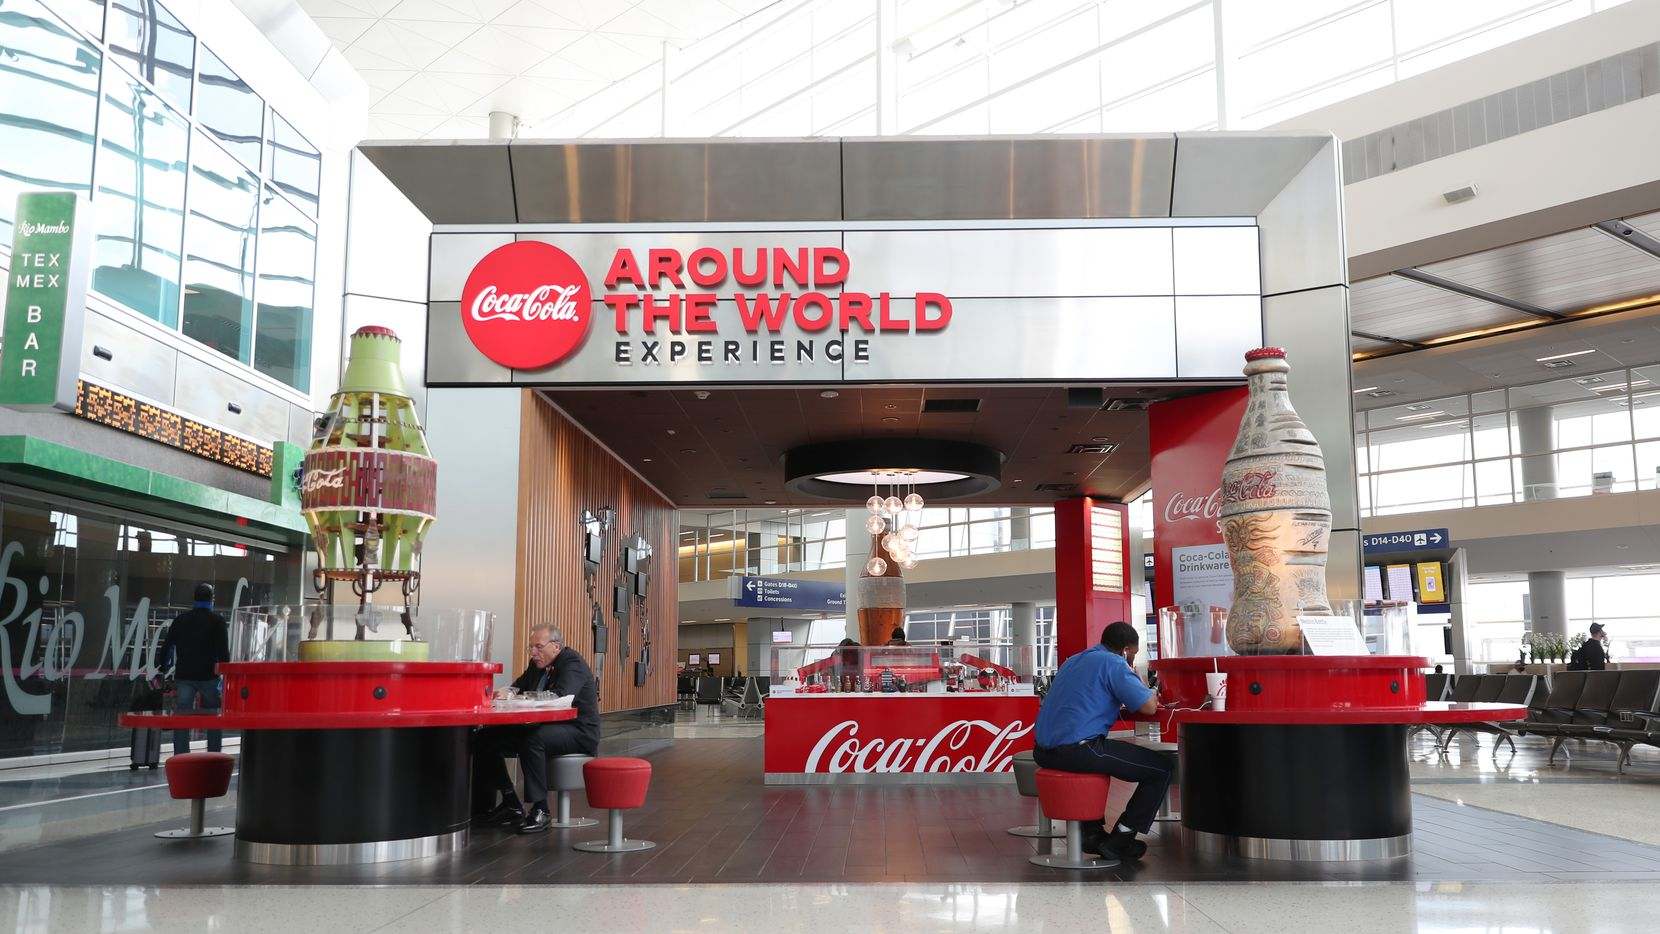 The new Coca-Cola Around the World Experiences space at DFW International Airport in Terminal D features a small Coke museum, an interactive photo booth and a place to plug in devices between flights.